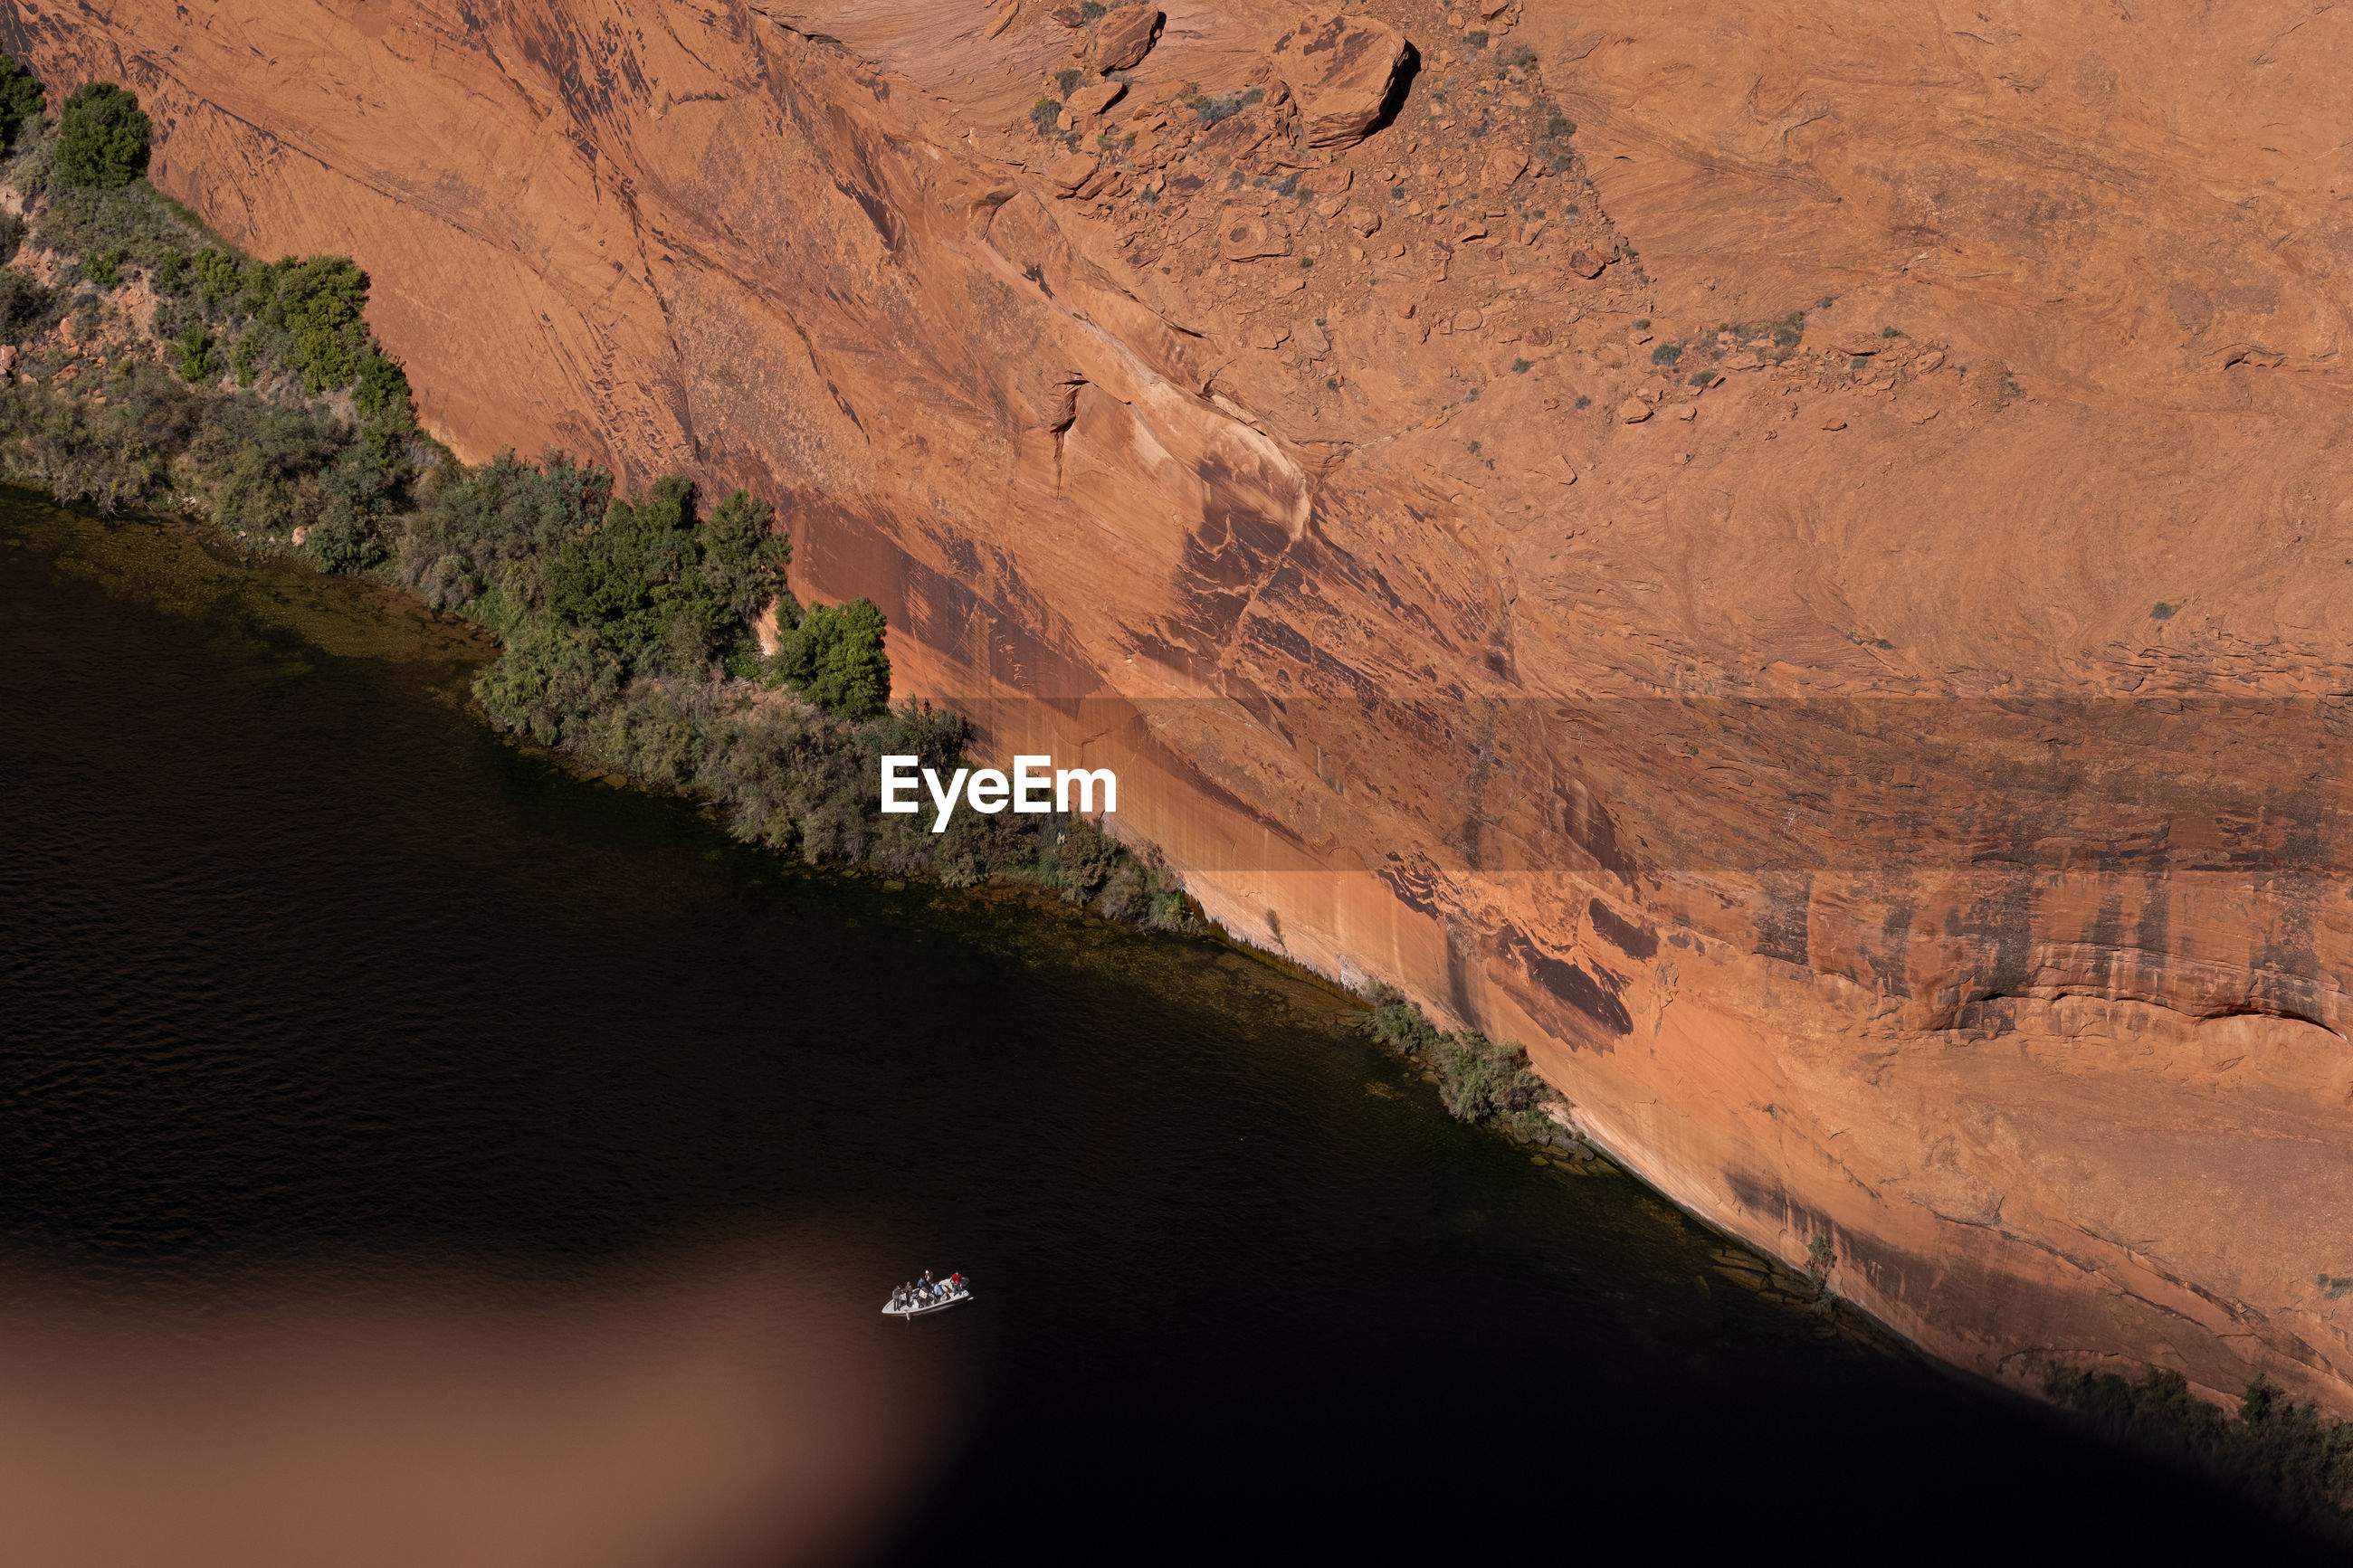 High angle view of small boat on colorado river against red cliff in arizona, usa